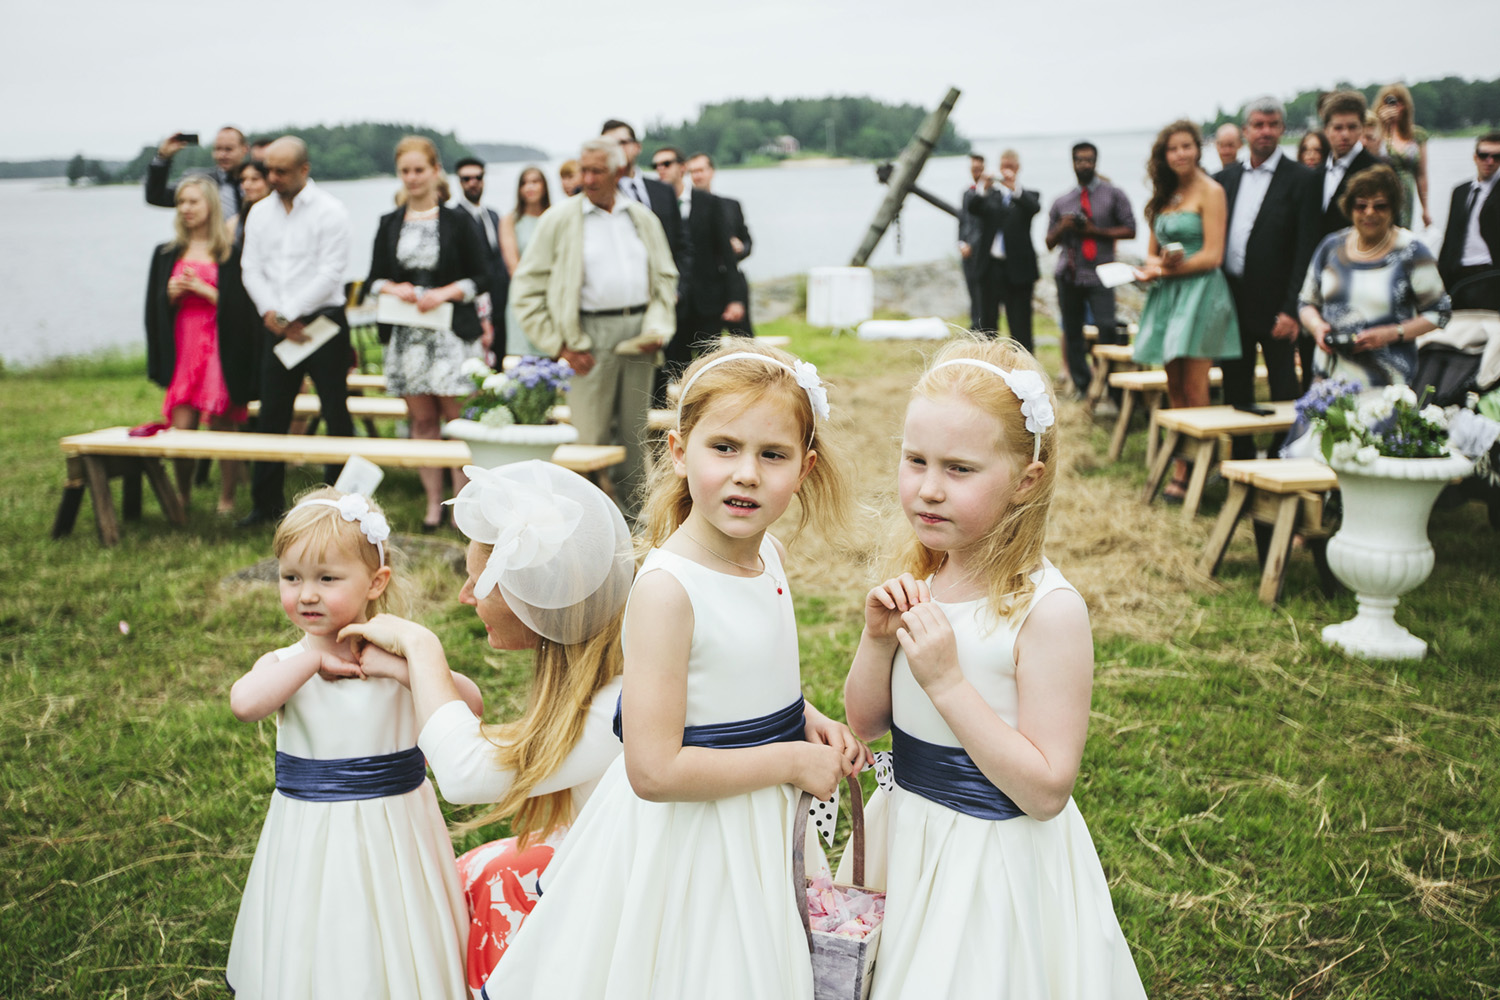 Brandon_werth_Sweden_wedding_Photographer_baltic_sea_27.jpg